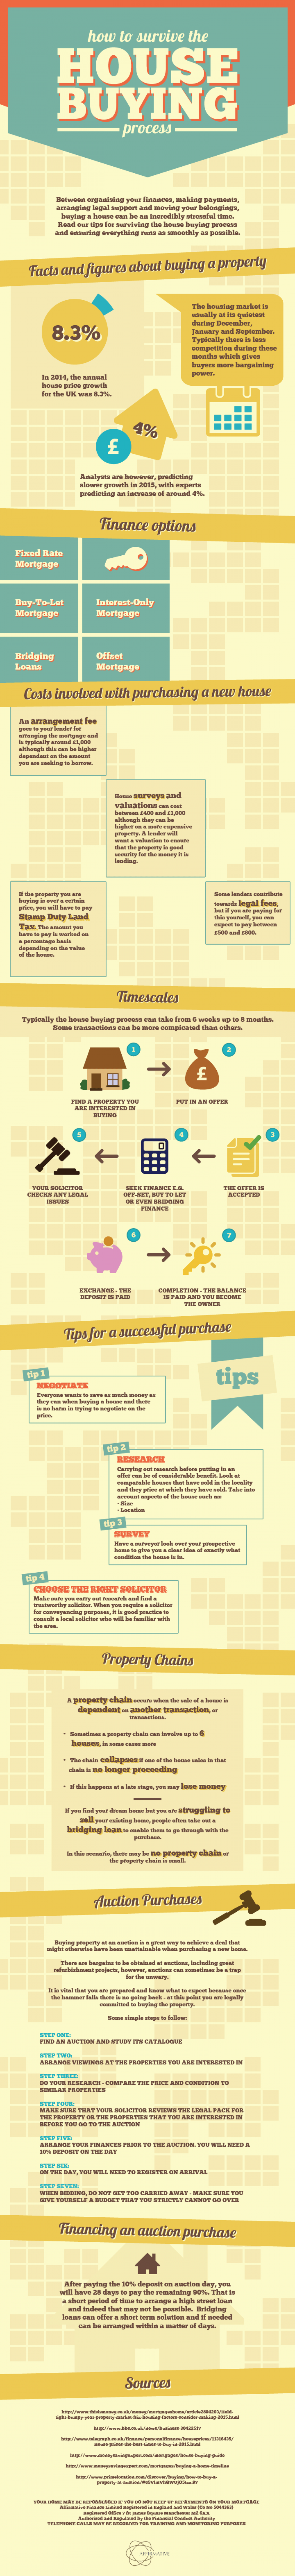 How to survive the house buying process Infographic